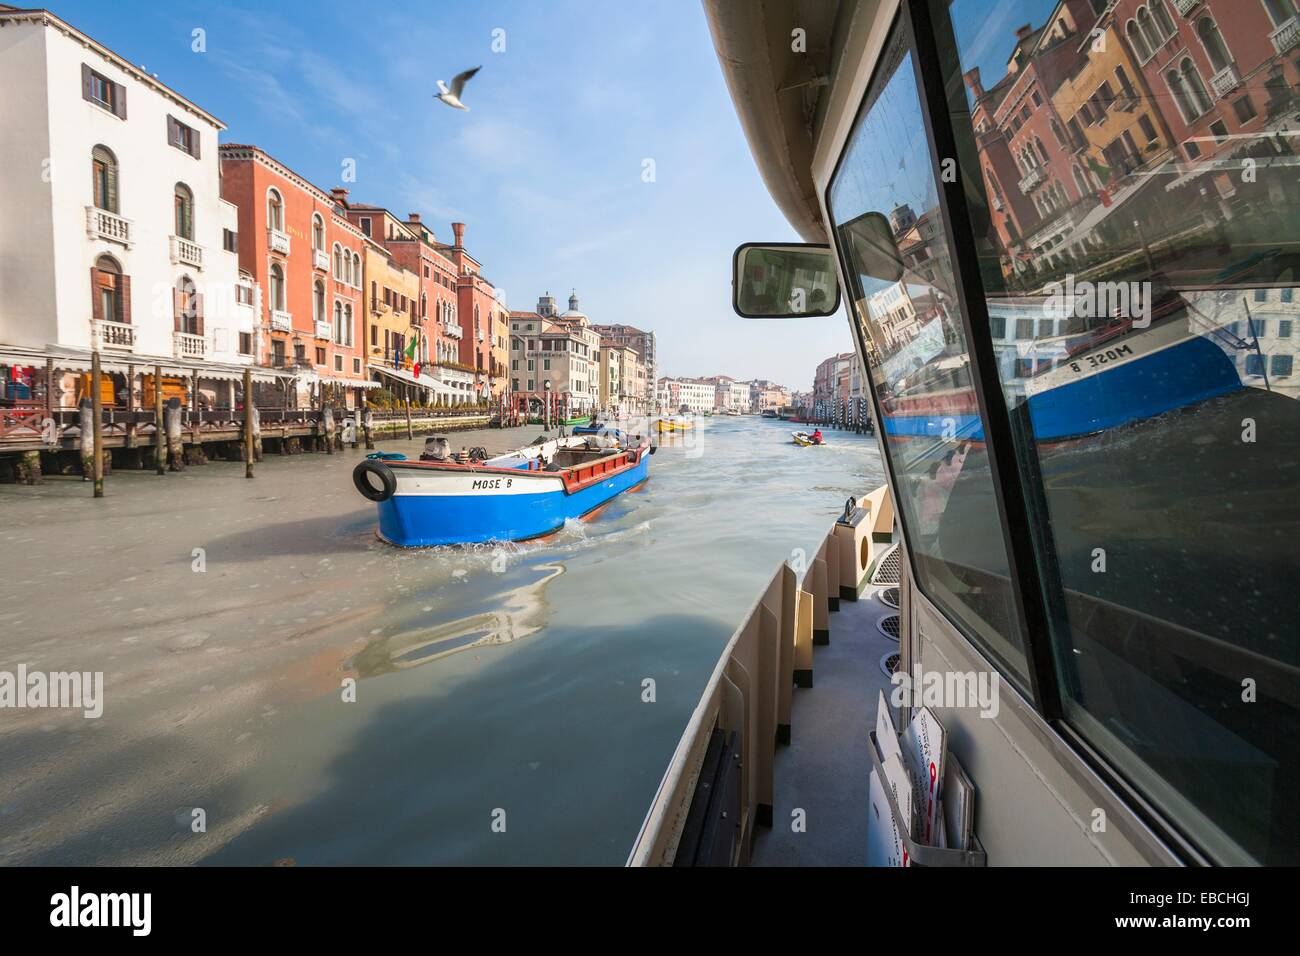 Trading boat and a Vaporetto on the Grand Canal (Canale Grande) Venice Italy Europe - Stock Image